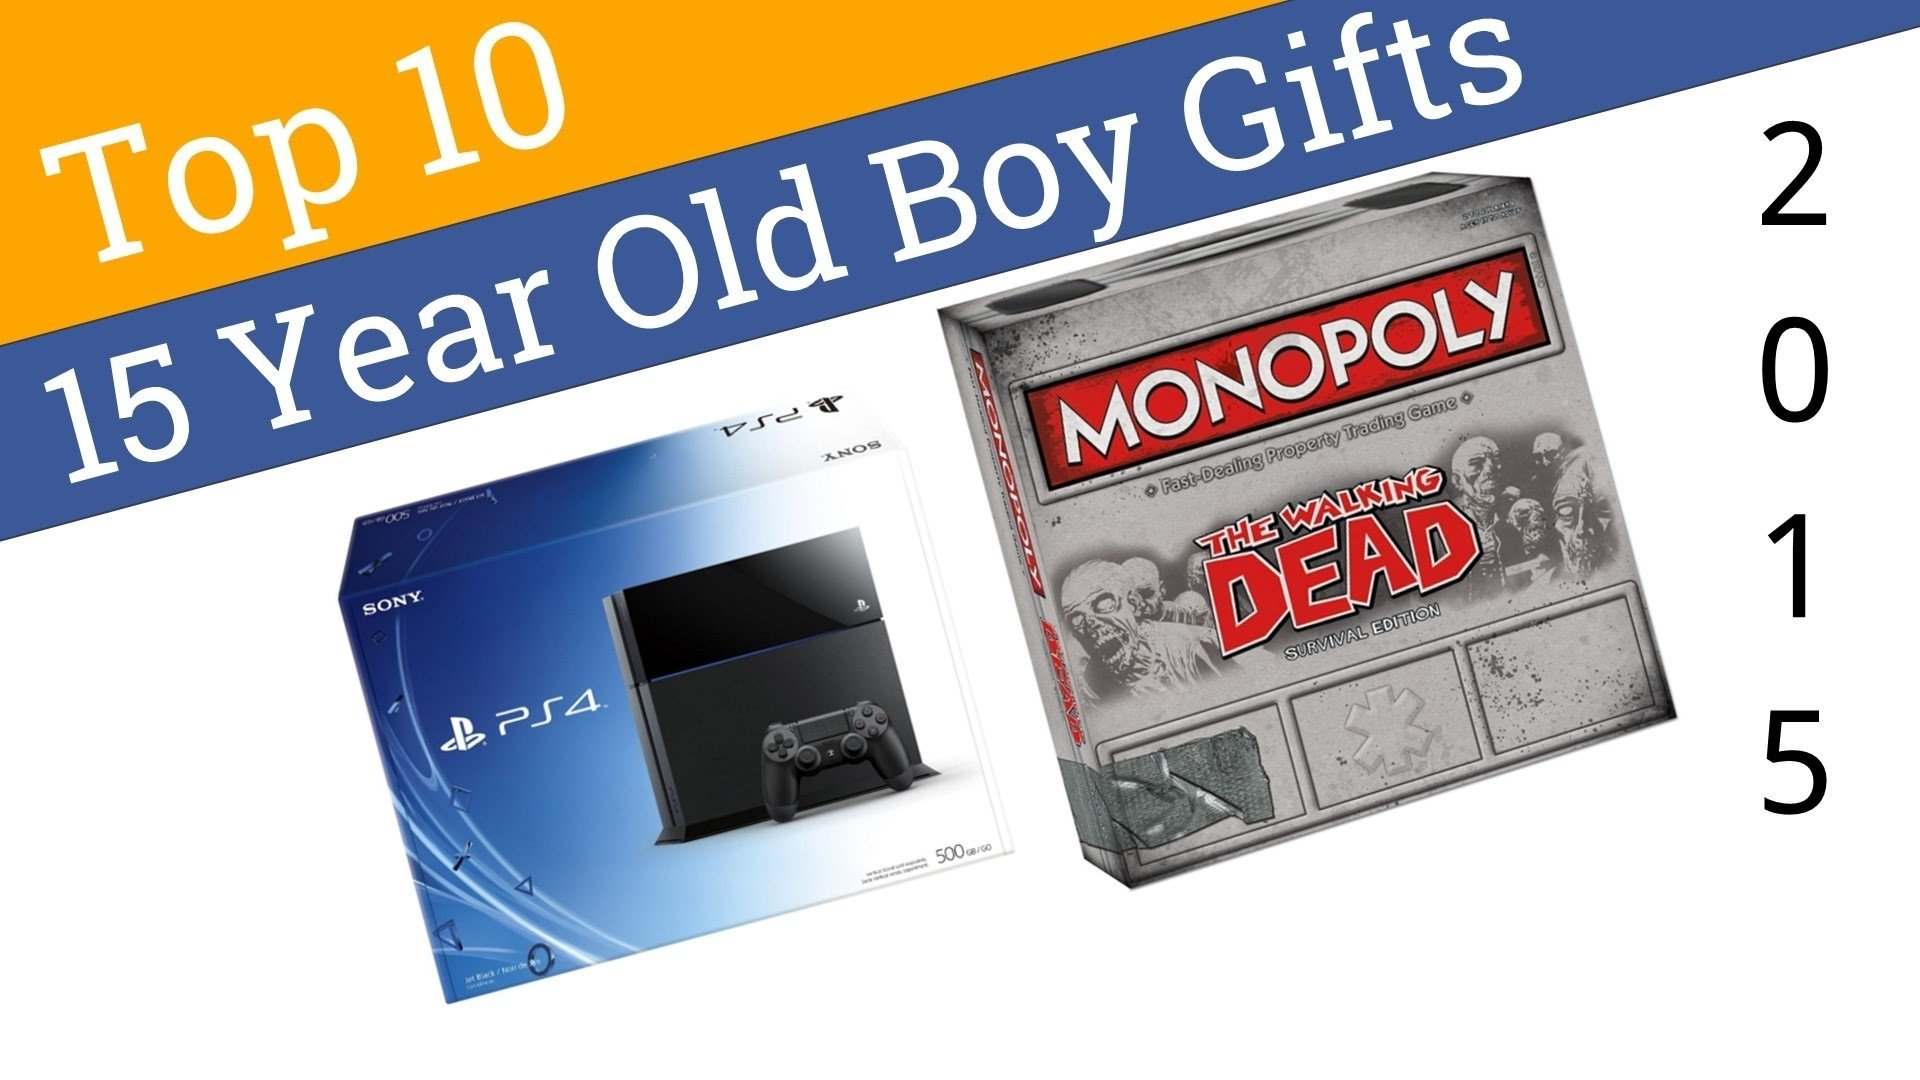 10 best 15 year old boy gifts 2015 - youtube